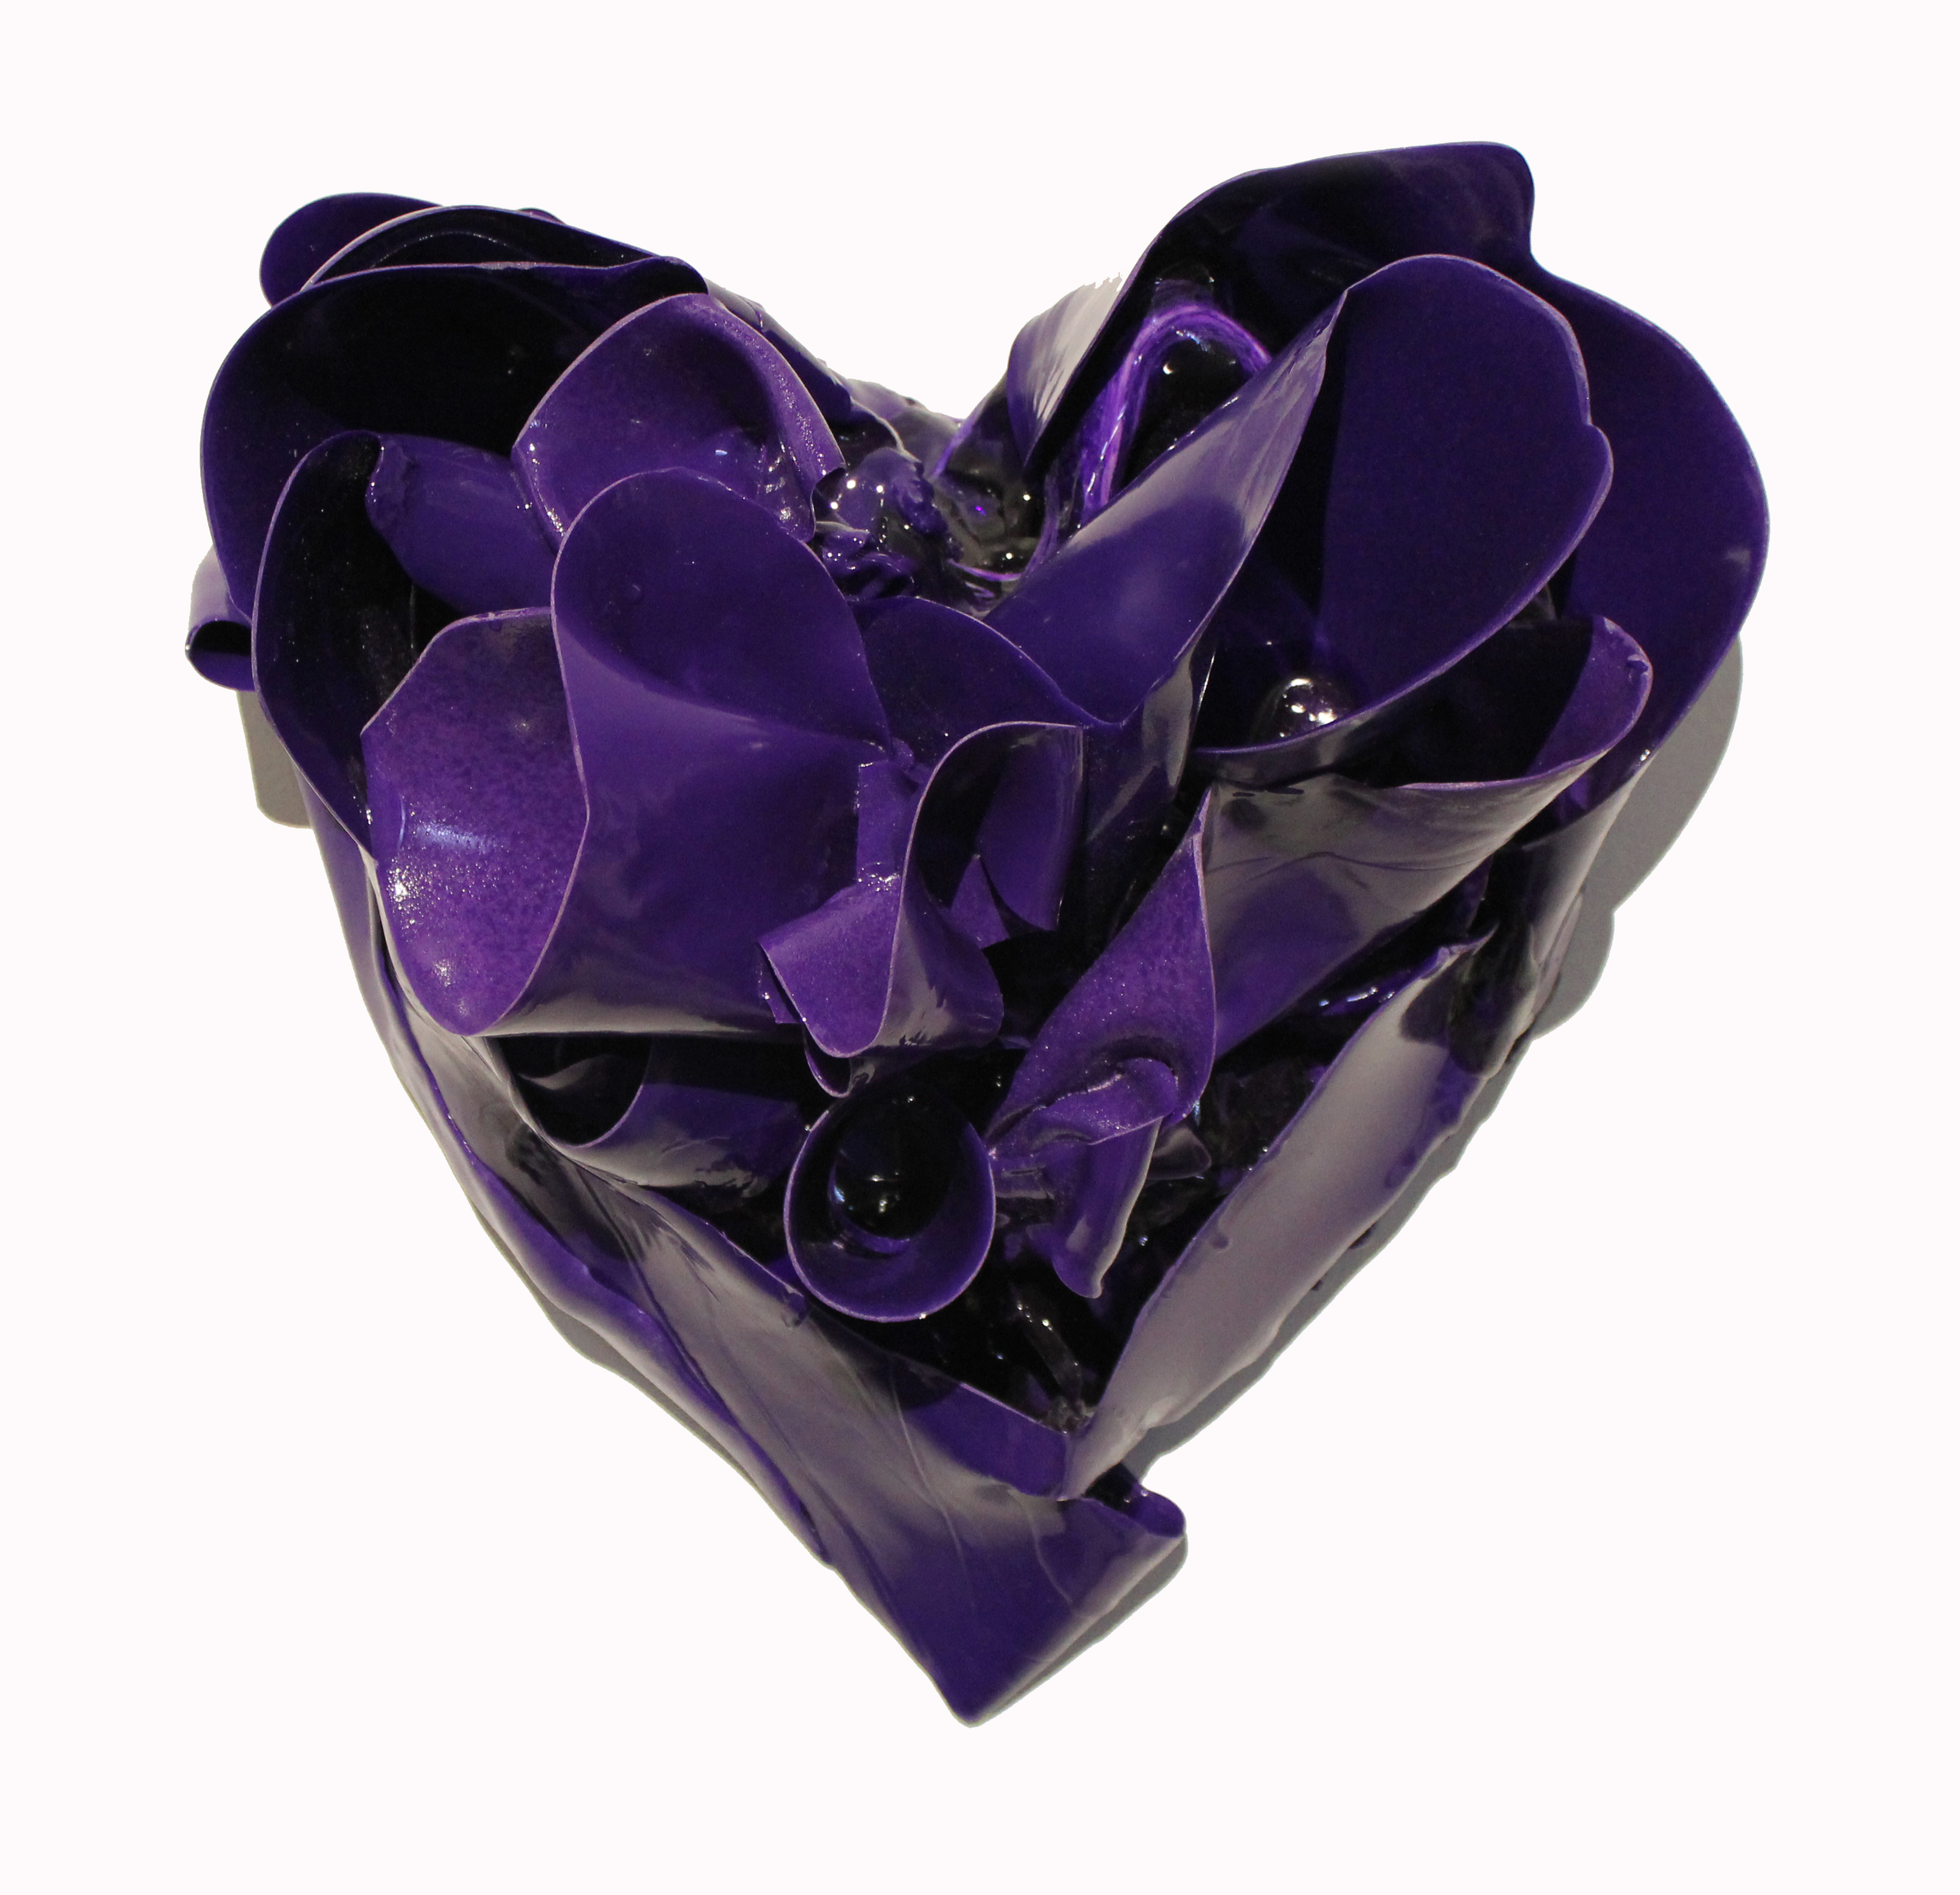 Works of Heart, Purple Heart 2018